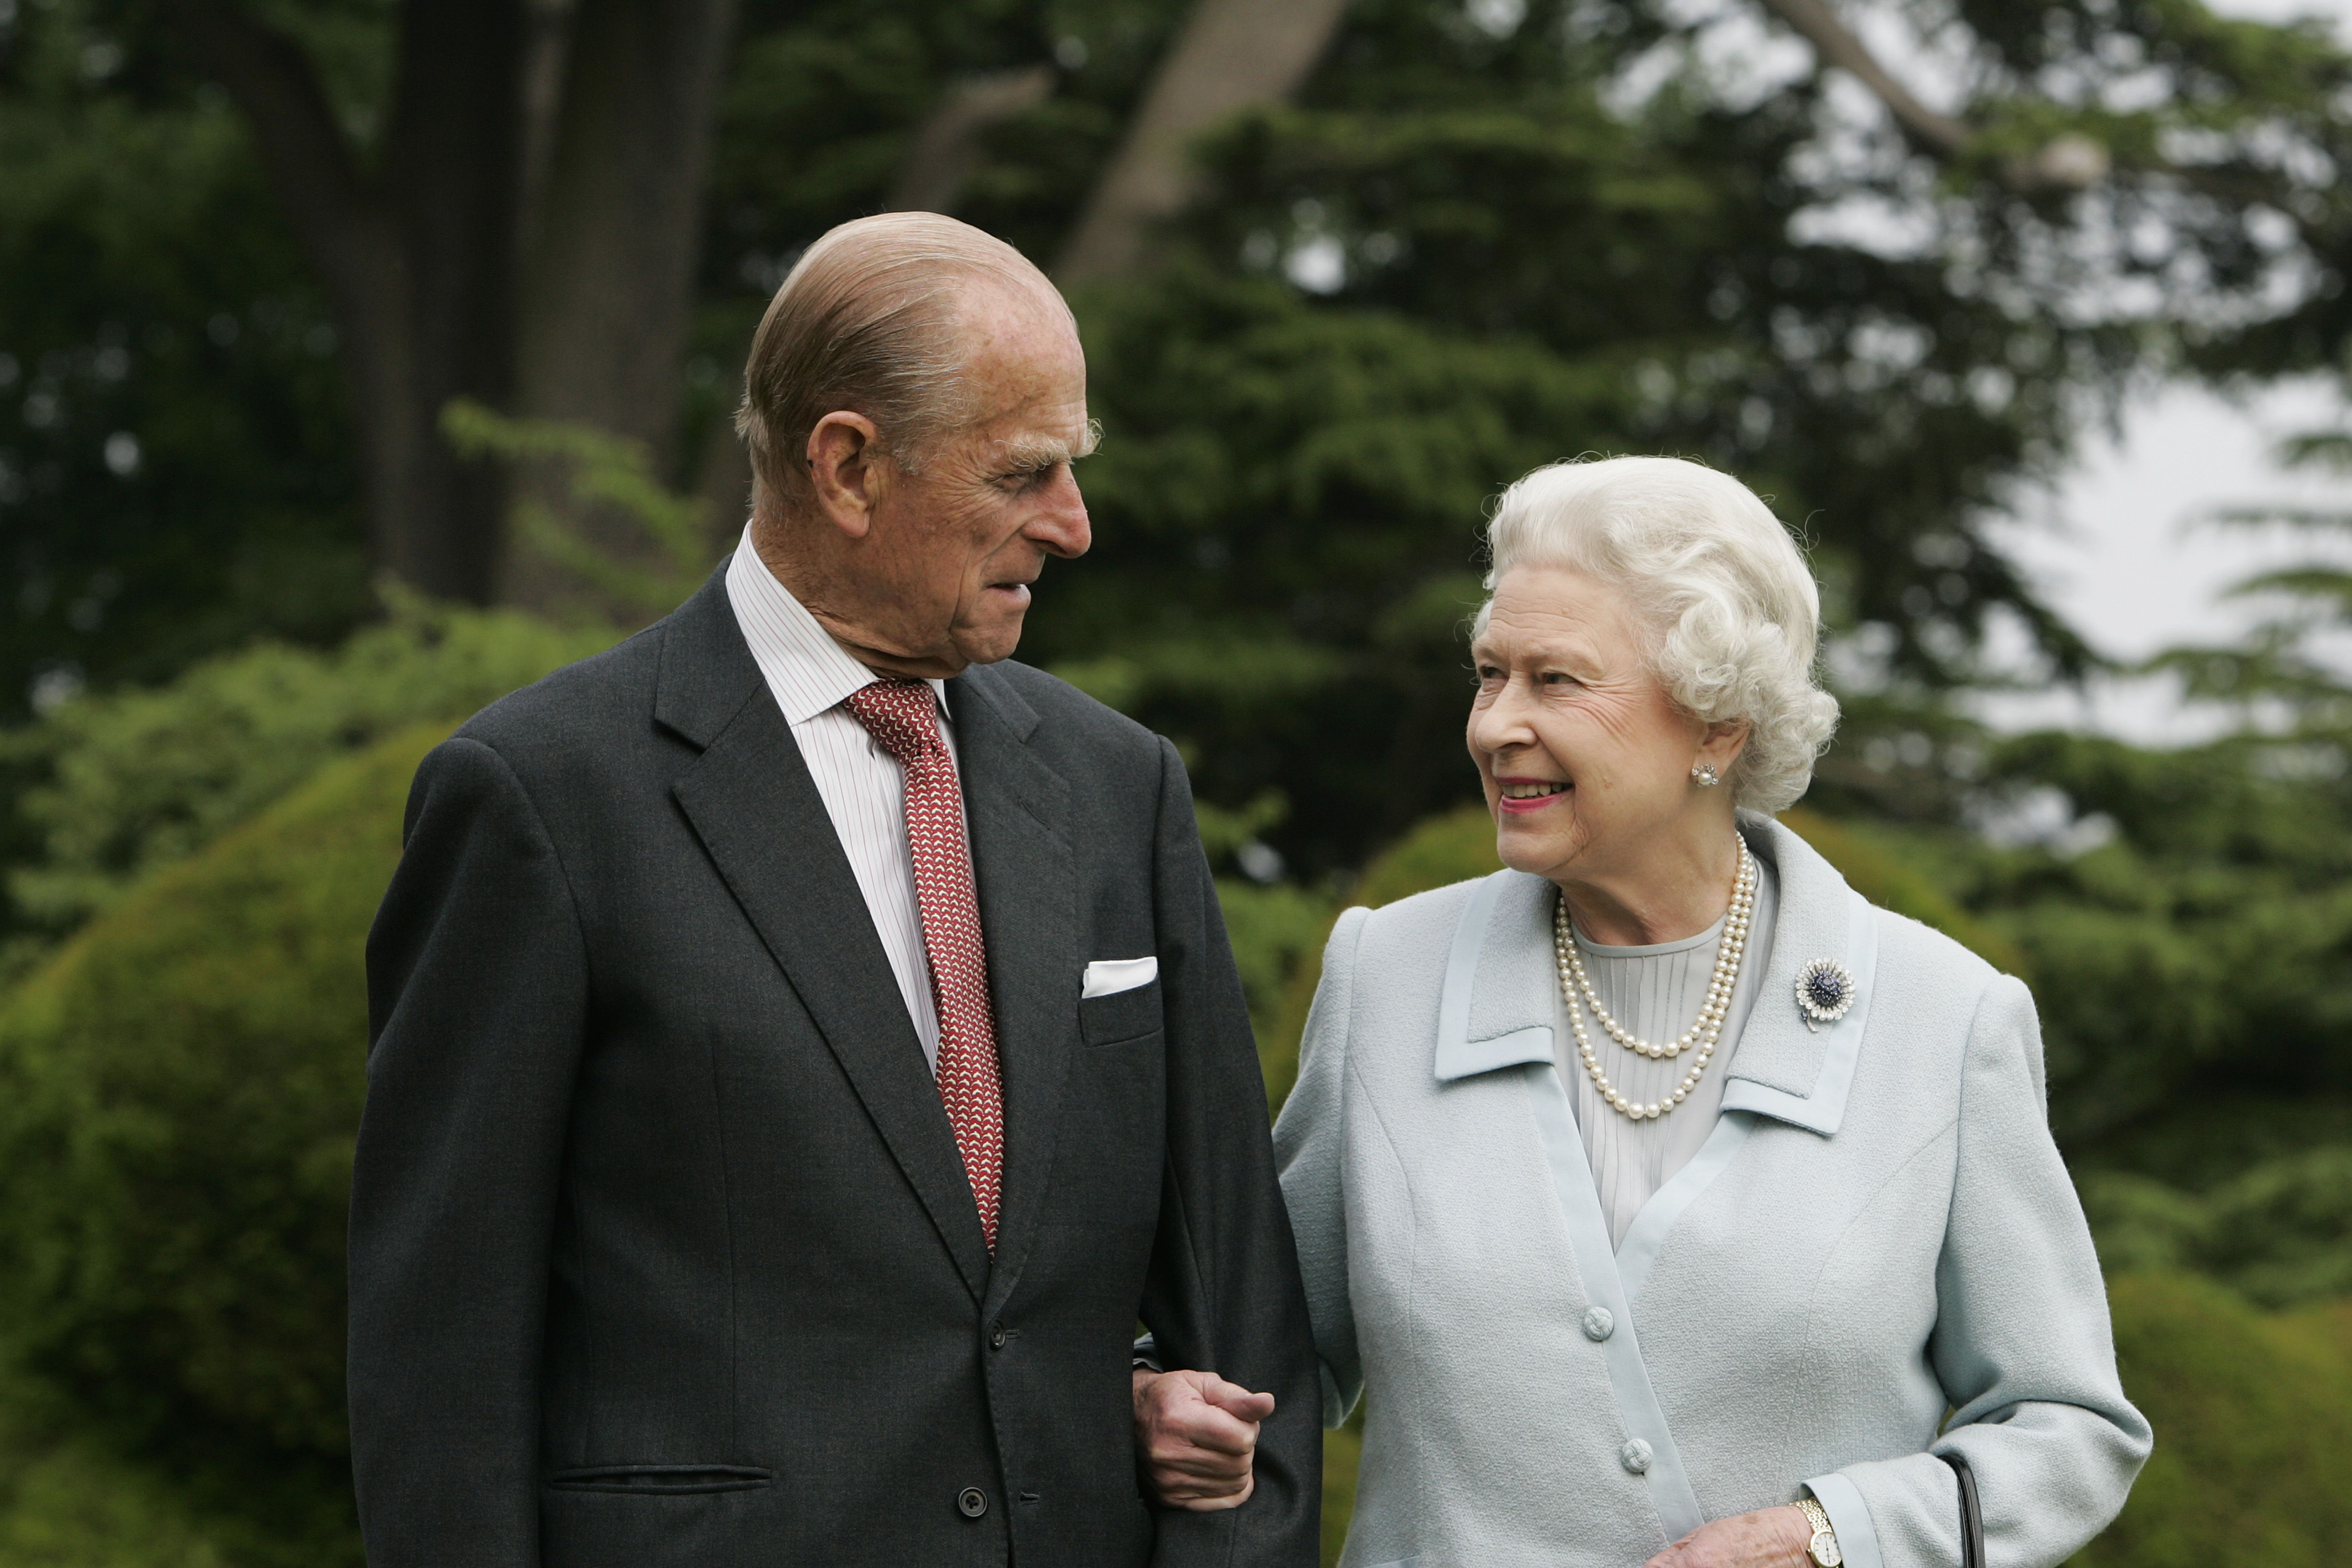 """The Queen and Prince Philip Made a Secret Pact Not to Mourn Each Other for """"Too Long,"""" a Royal Expert Says"""